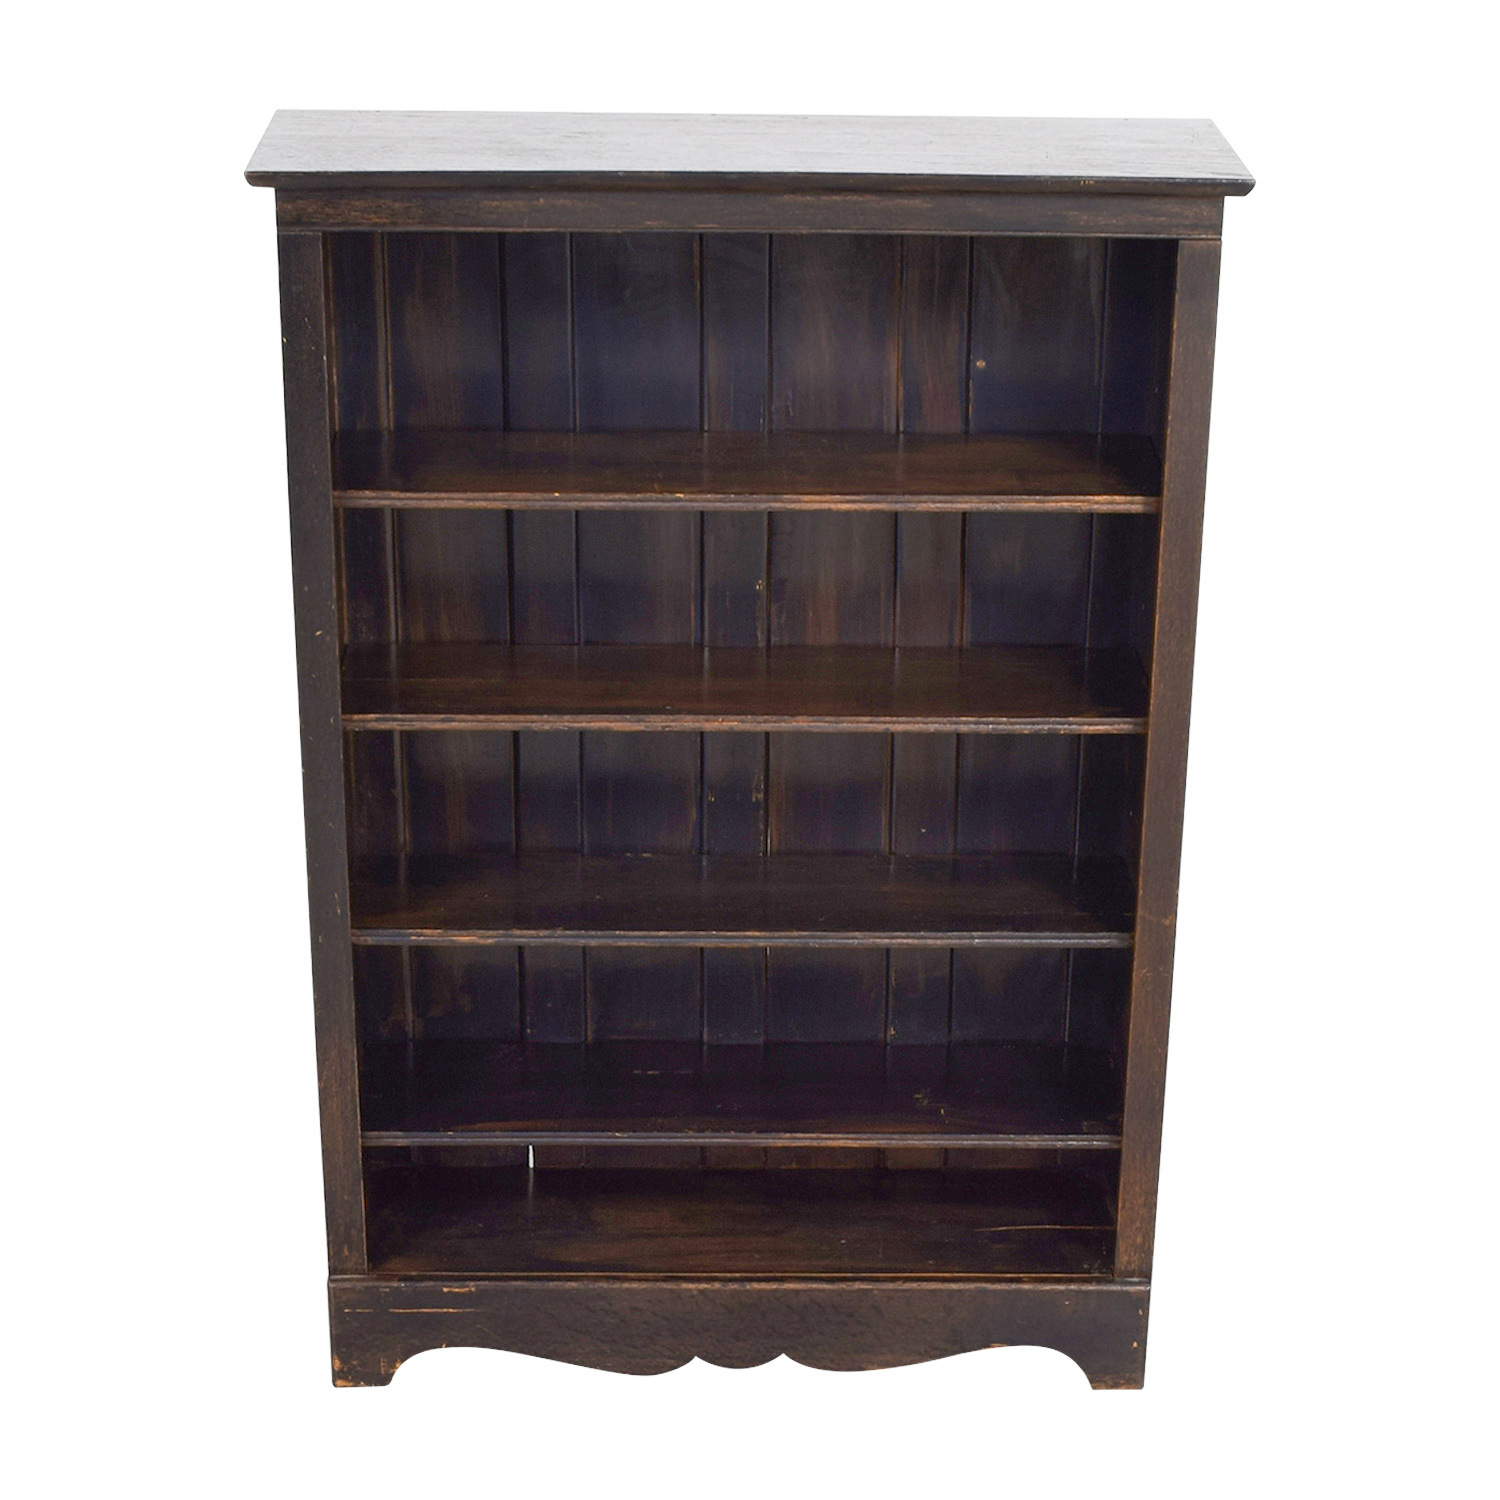 buy Pottery Barn Rustic Bookcase Pottery Barn Bookcases & Shelving